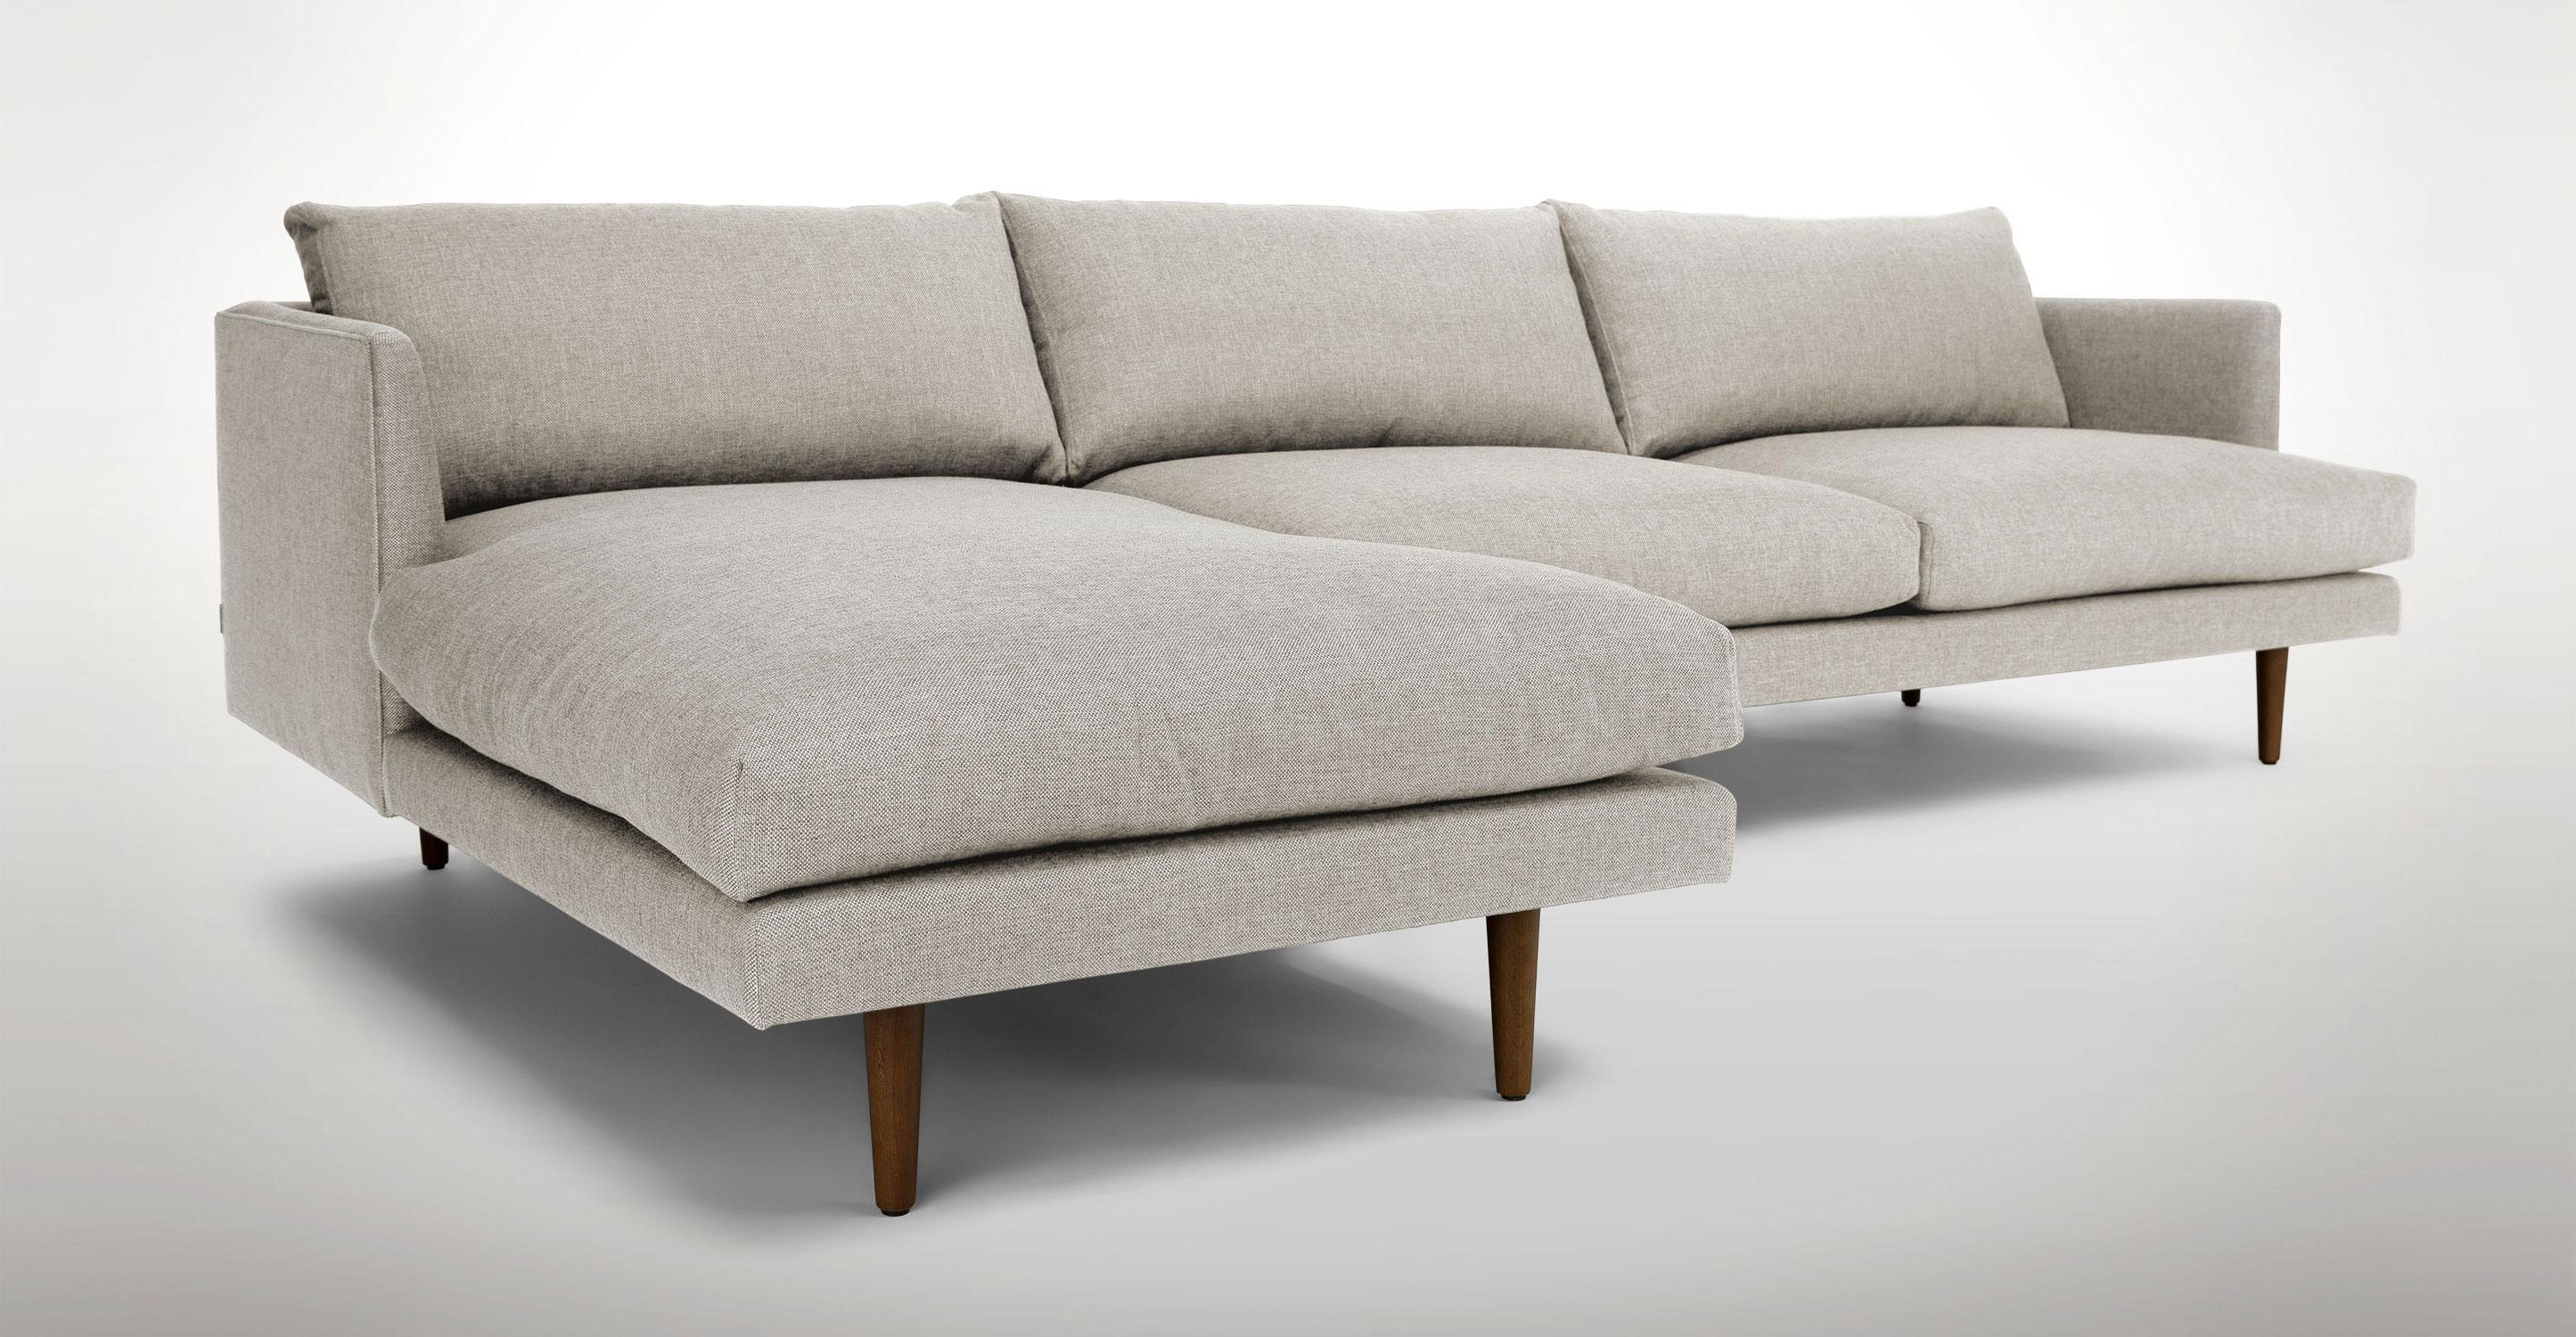 Sofa : Mid Century Modern Sectional Sofas Decor Modern On Cool Throughout Mid Century Modern Sectional (Image 15 of 20)